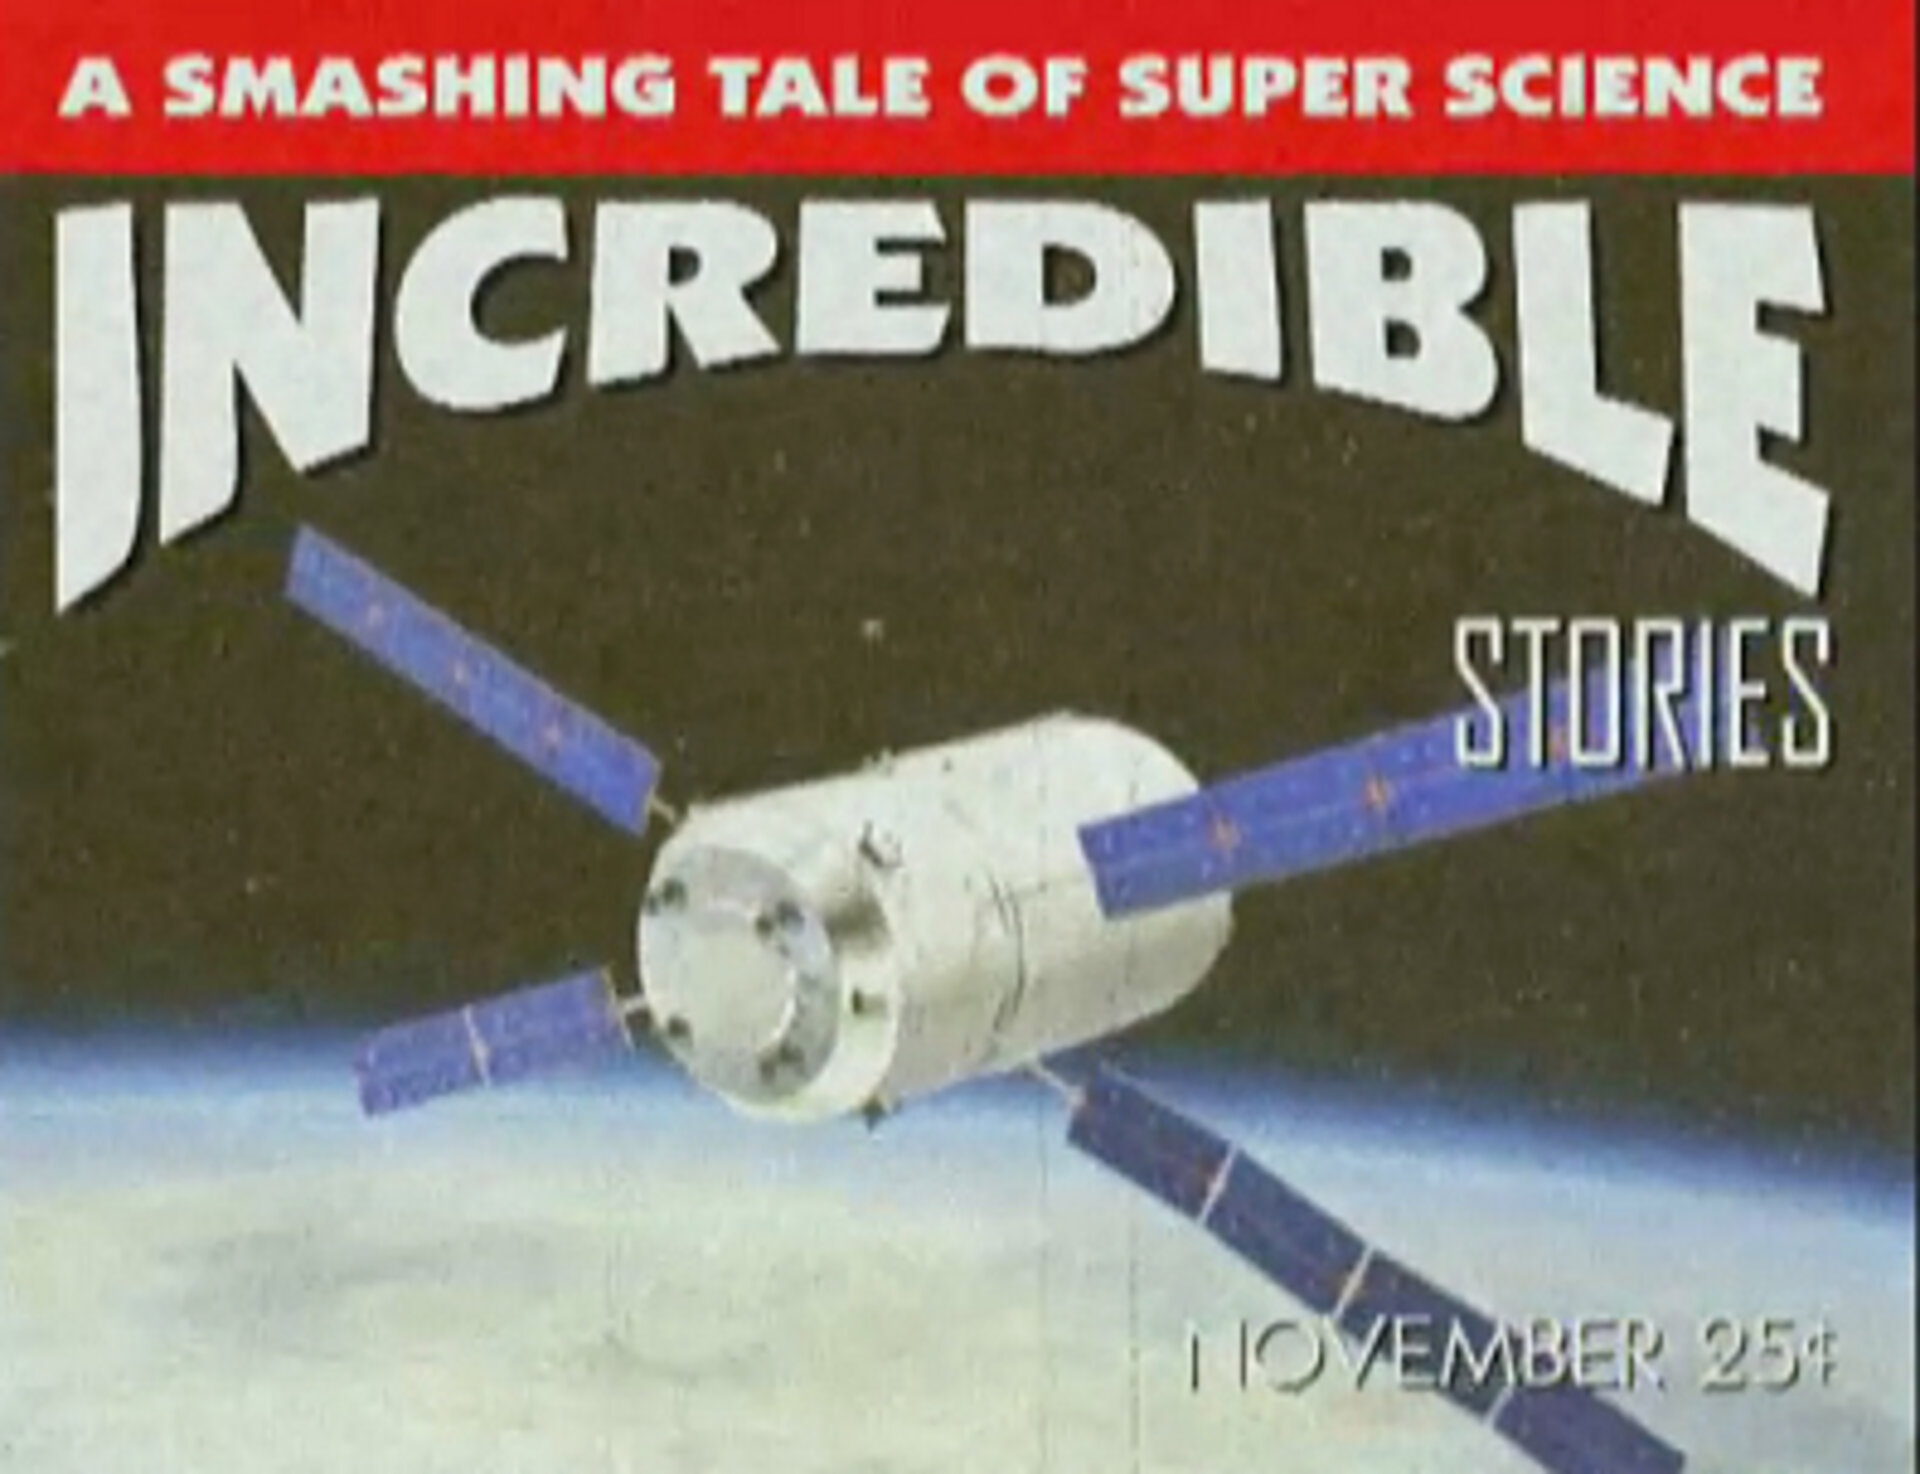 Science fiction provides inspiration for scientists and engineers who build real spacecraft